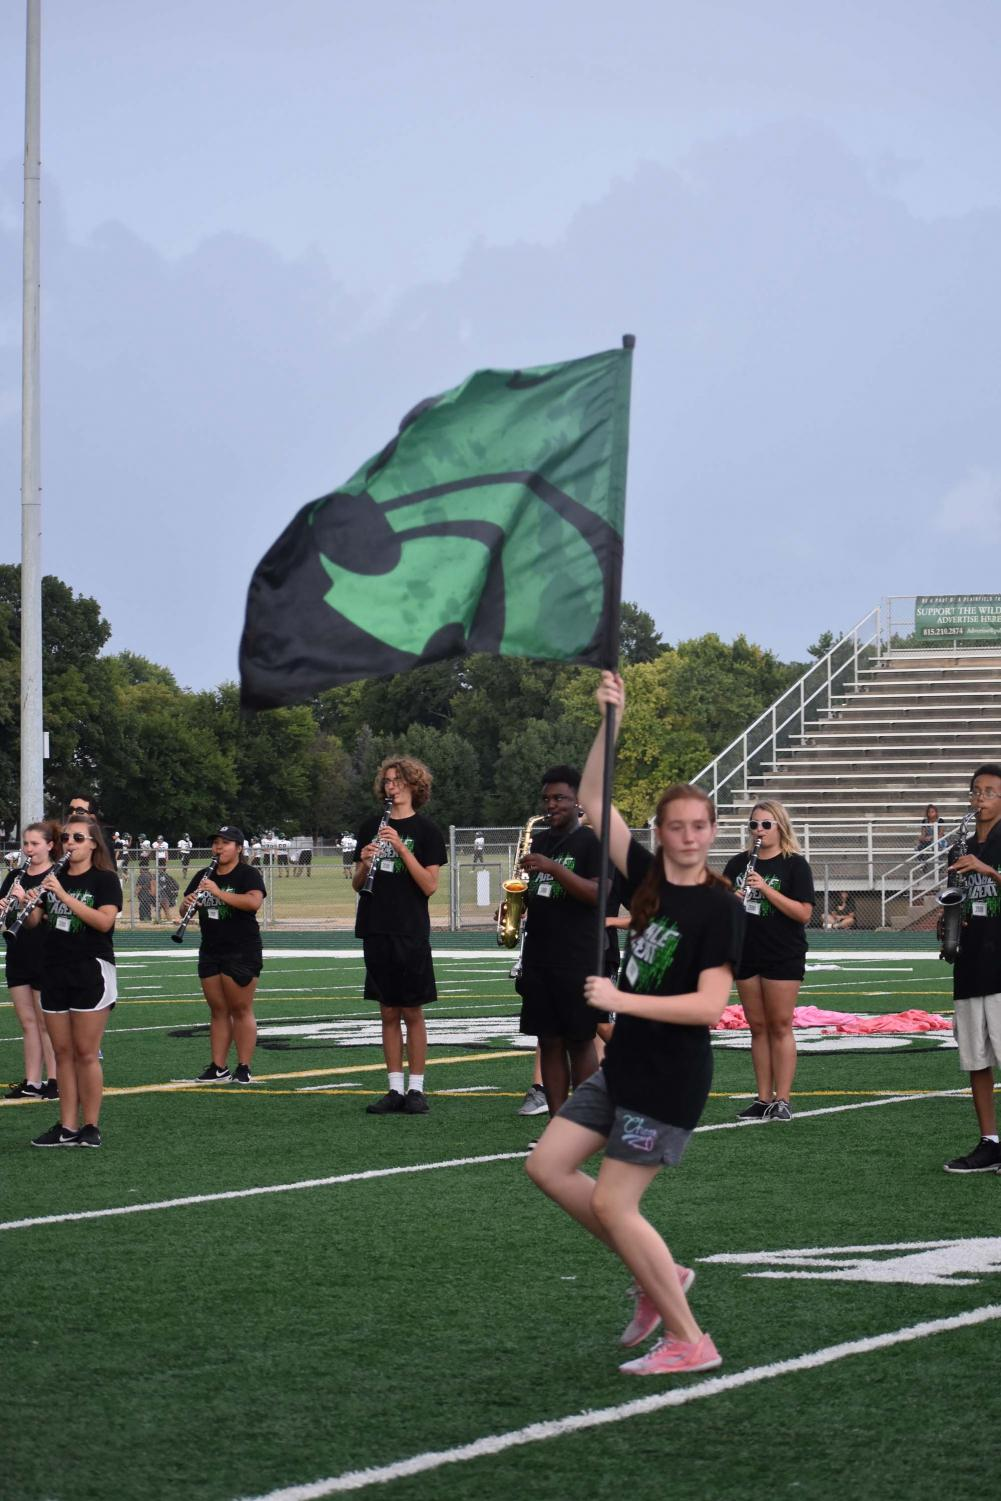 Freshman+Madison+Felgenhauer+marches+with+the+wildcat+flag+during+the+band%27s+half+time+show+performance+%22Double+Agent%22.